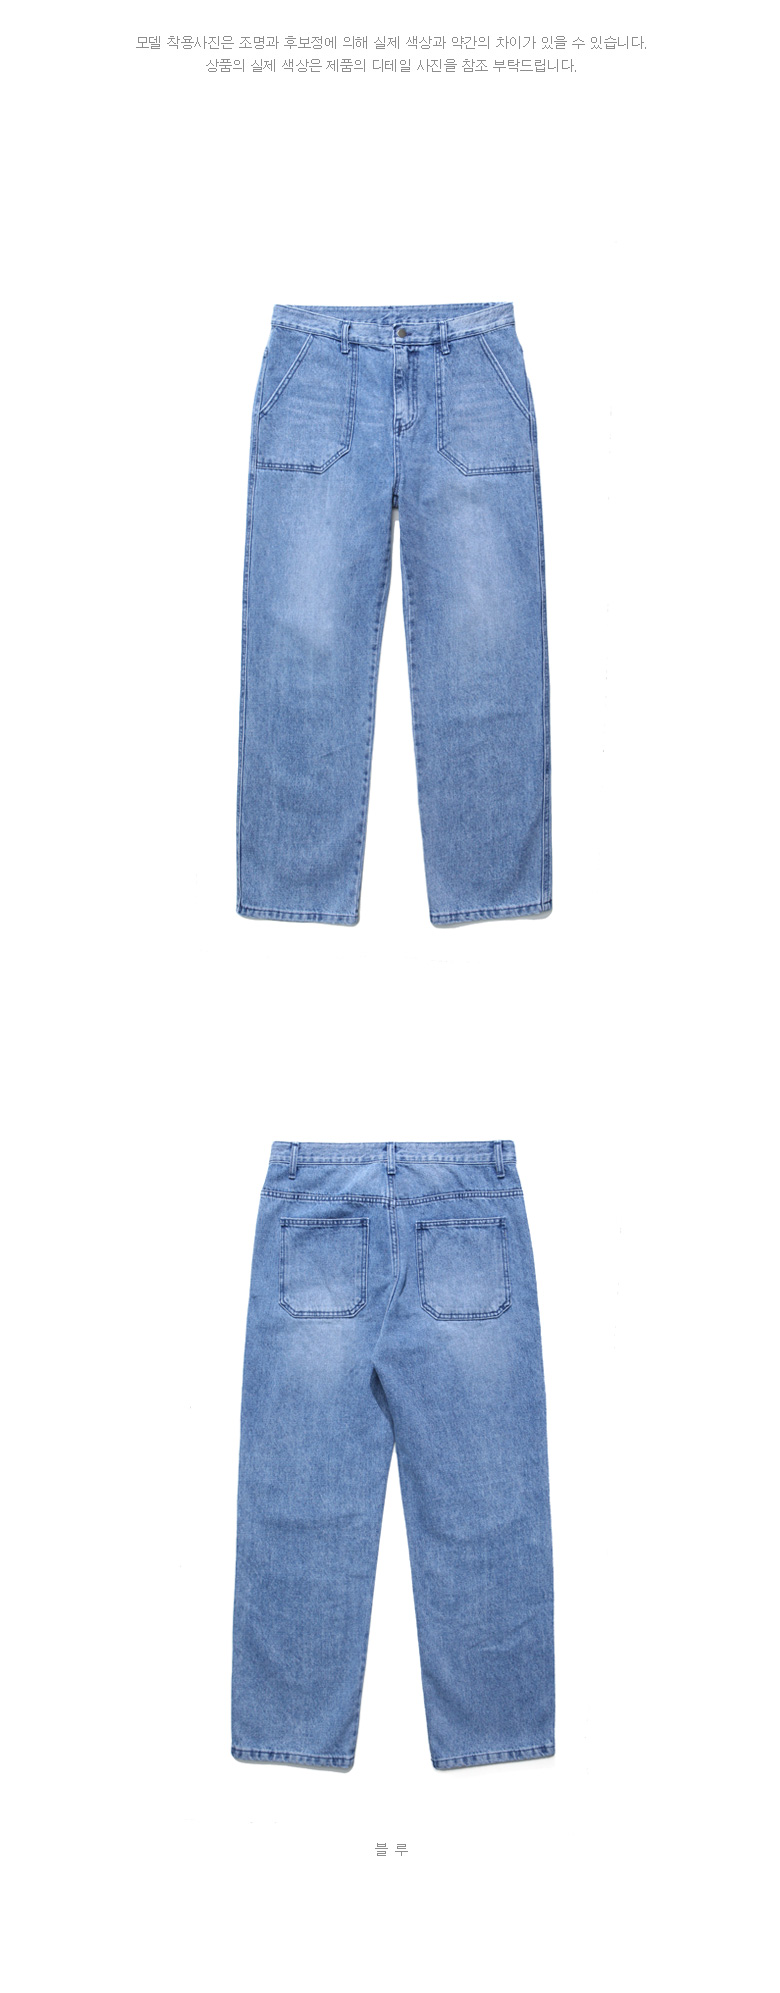 20190131_ps_complete_pant_blue_uk_01.jpg